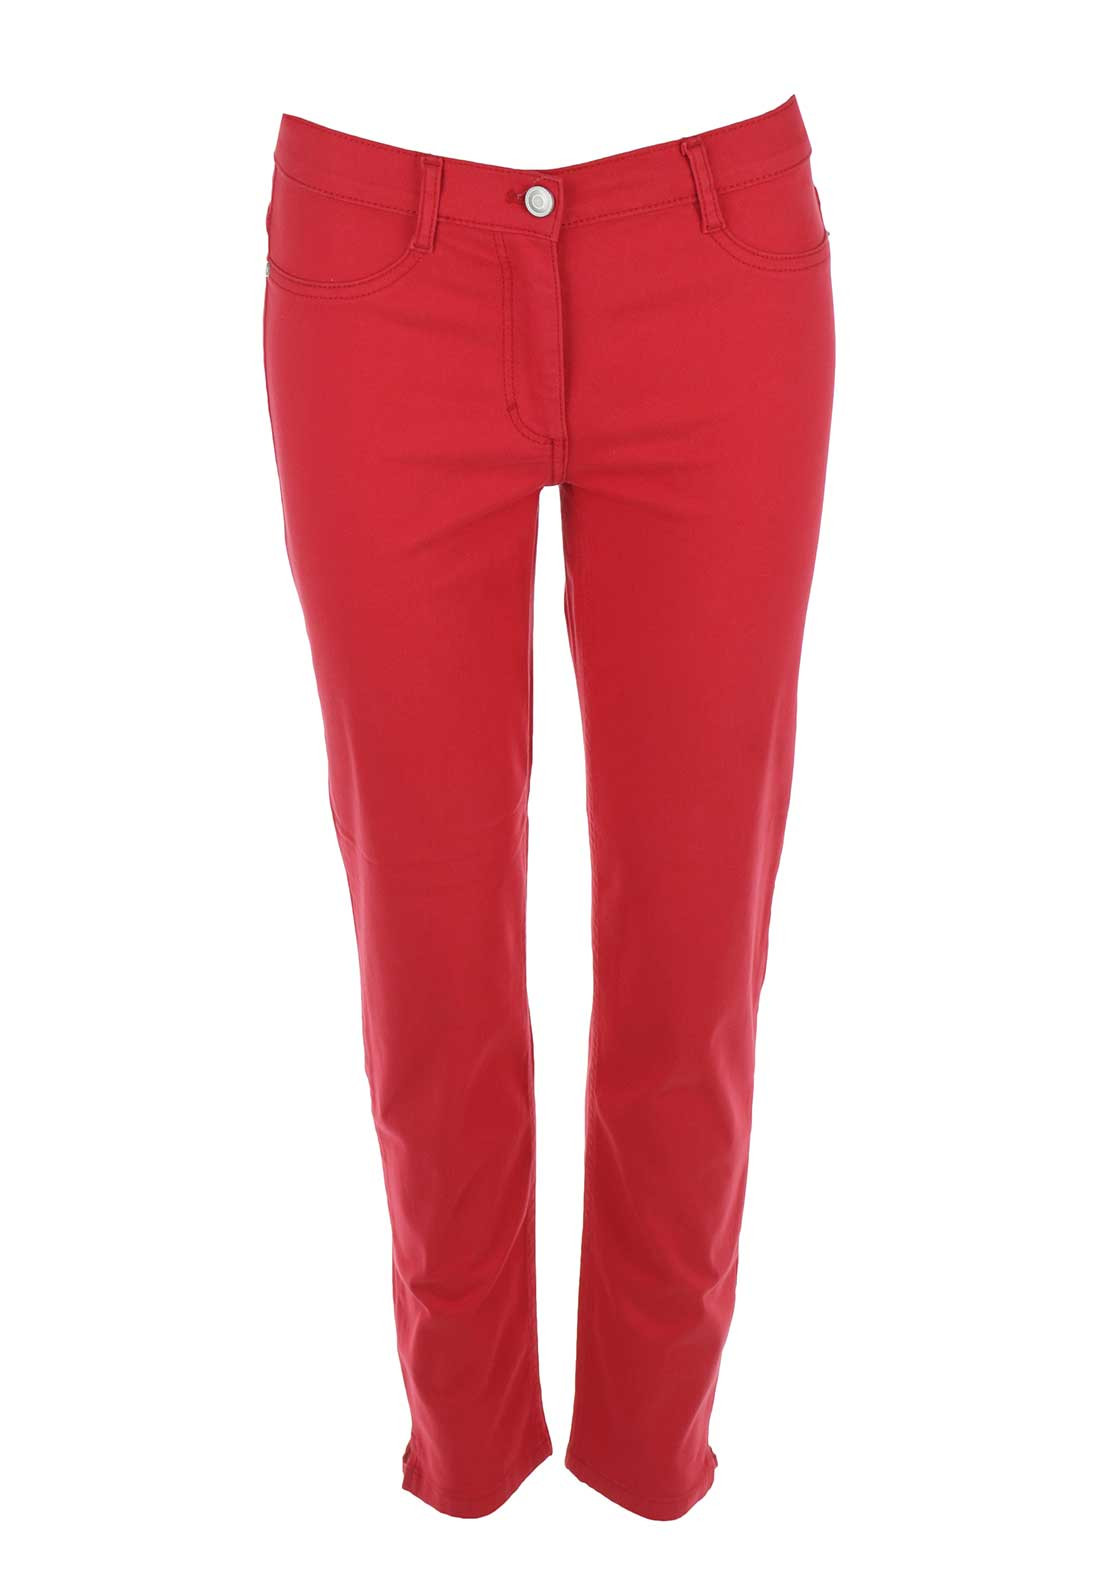 Betty Barclay 7/8 Length Slim Fit Jeans, Red